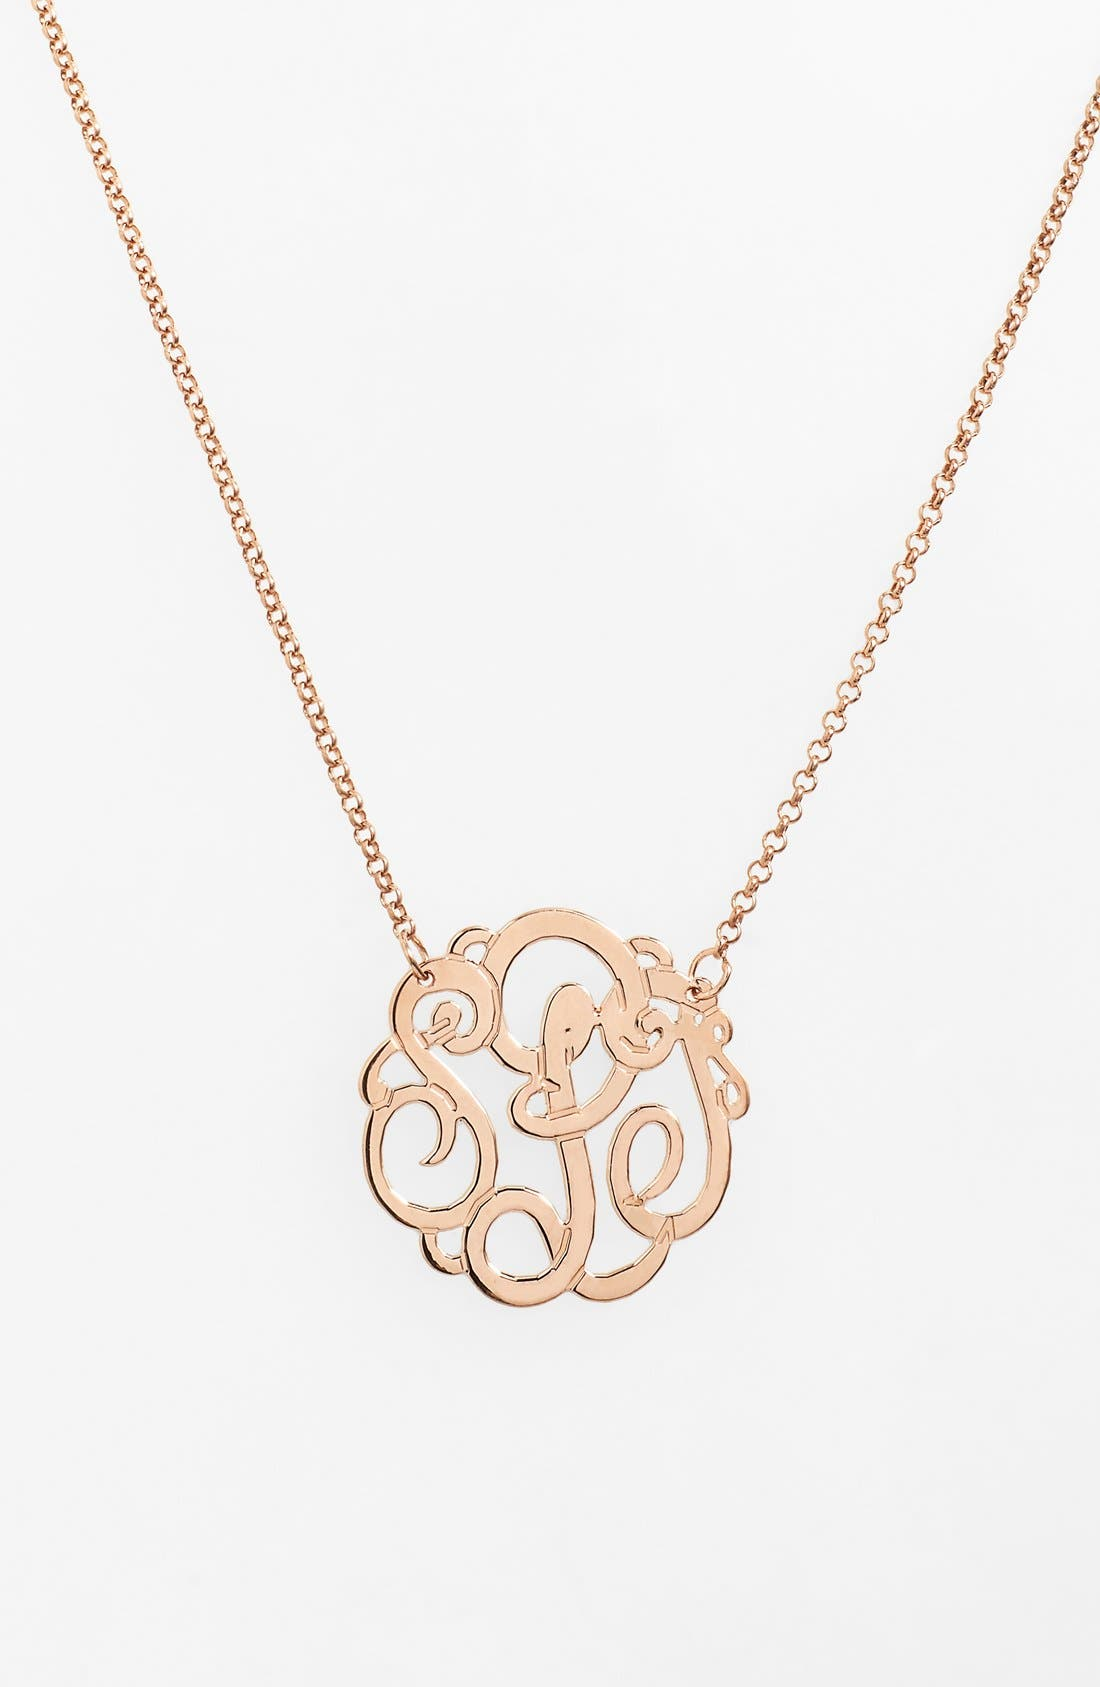 Main Image - Argento Vivo Personalized Small 3-Initial Letter Monogram Necklace (Nordstrom Exclusive)